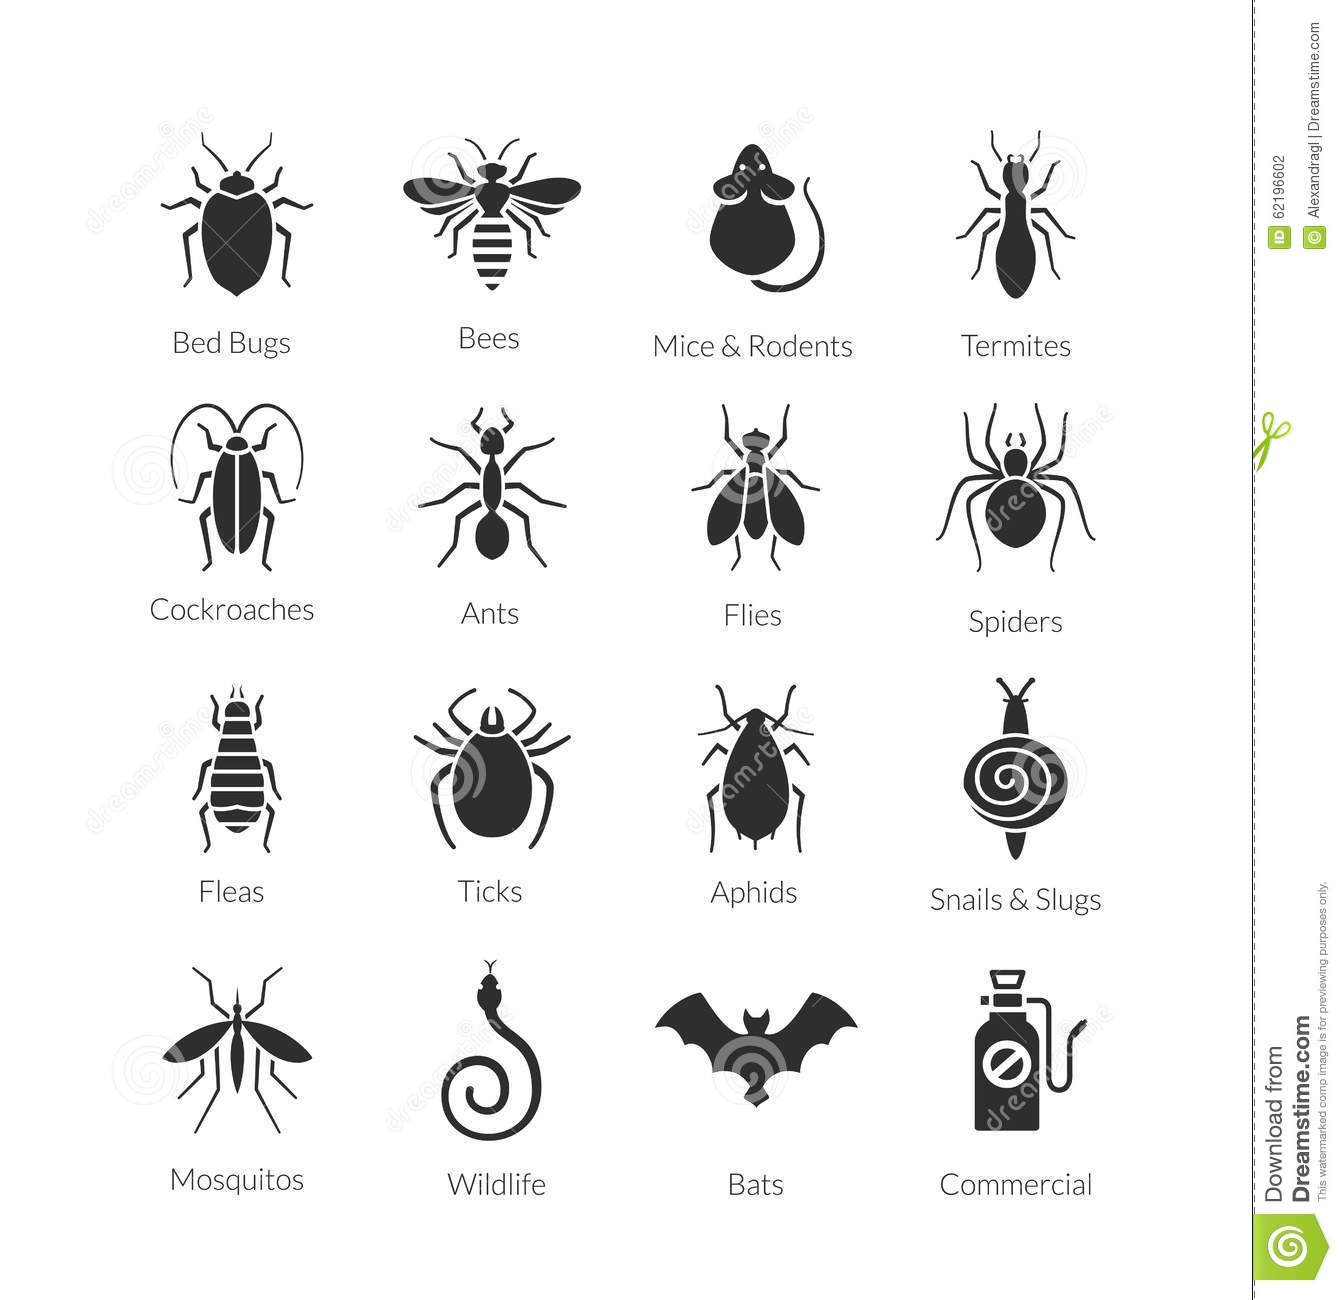 House Design Companies Australia Vector Set Of Icons With Insects For Pest Control Company